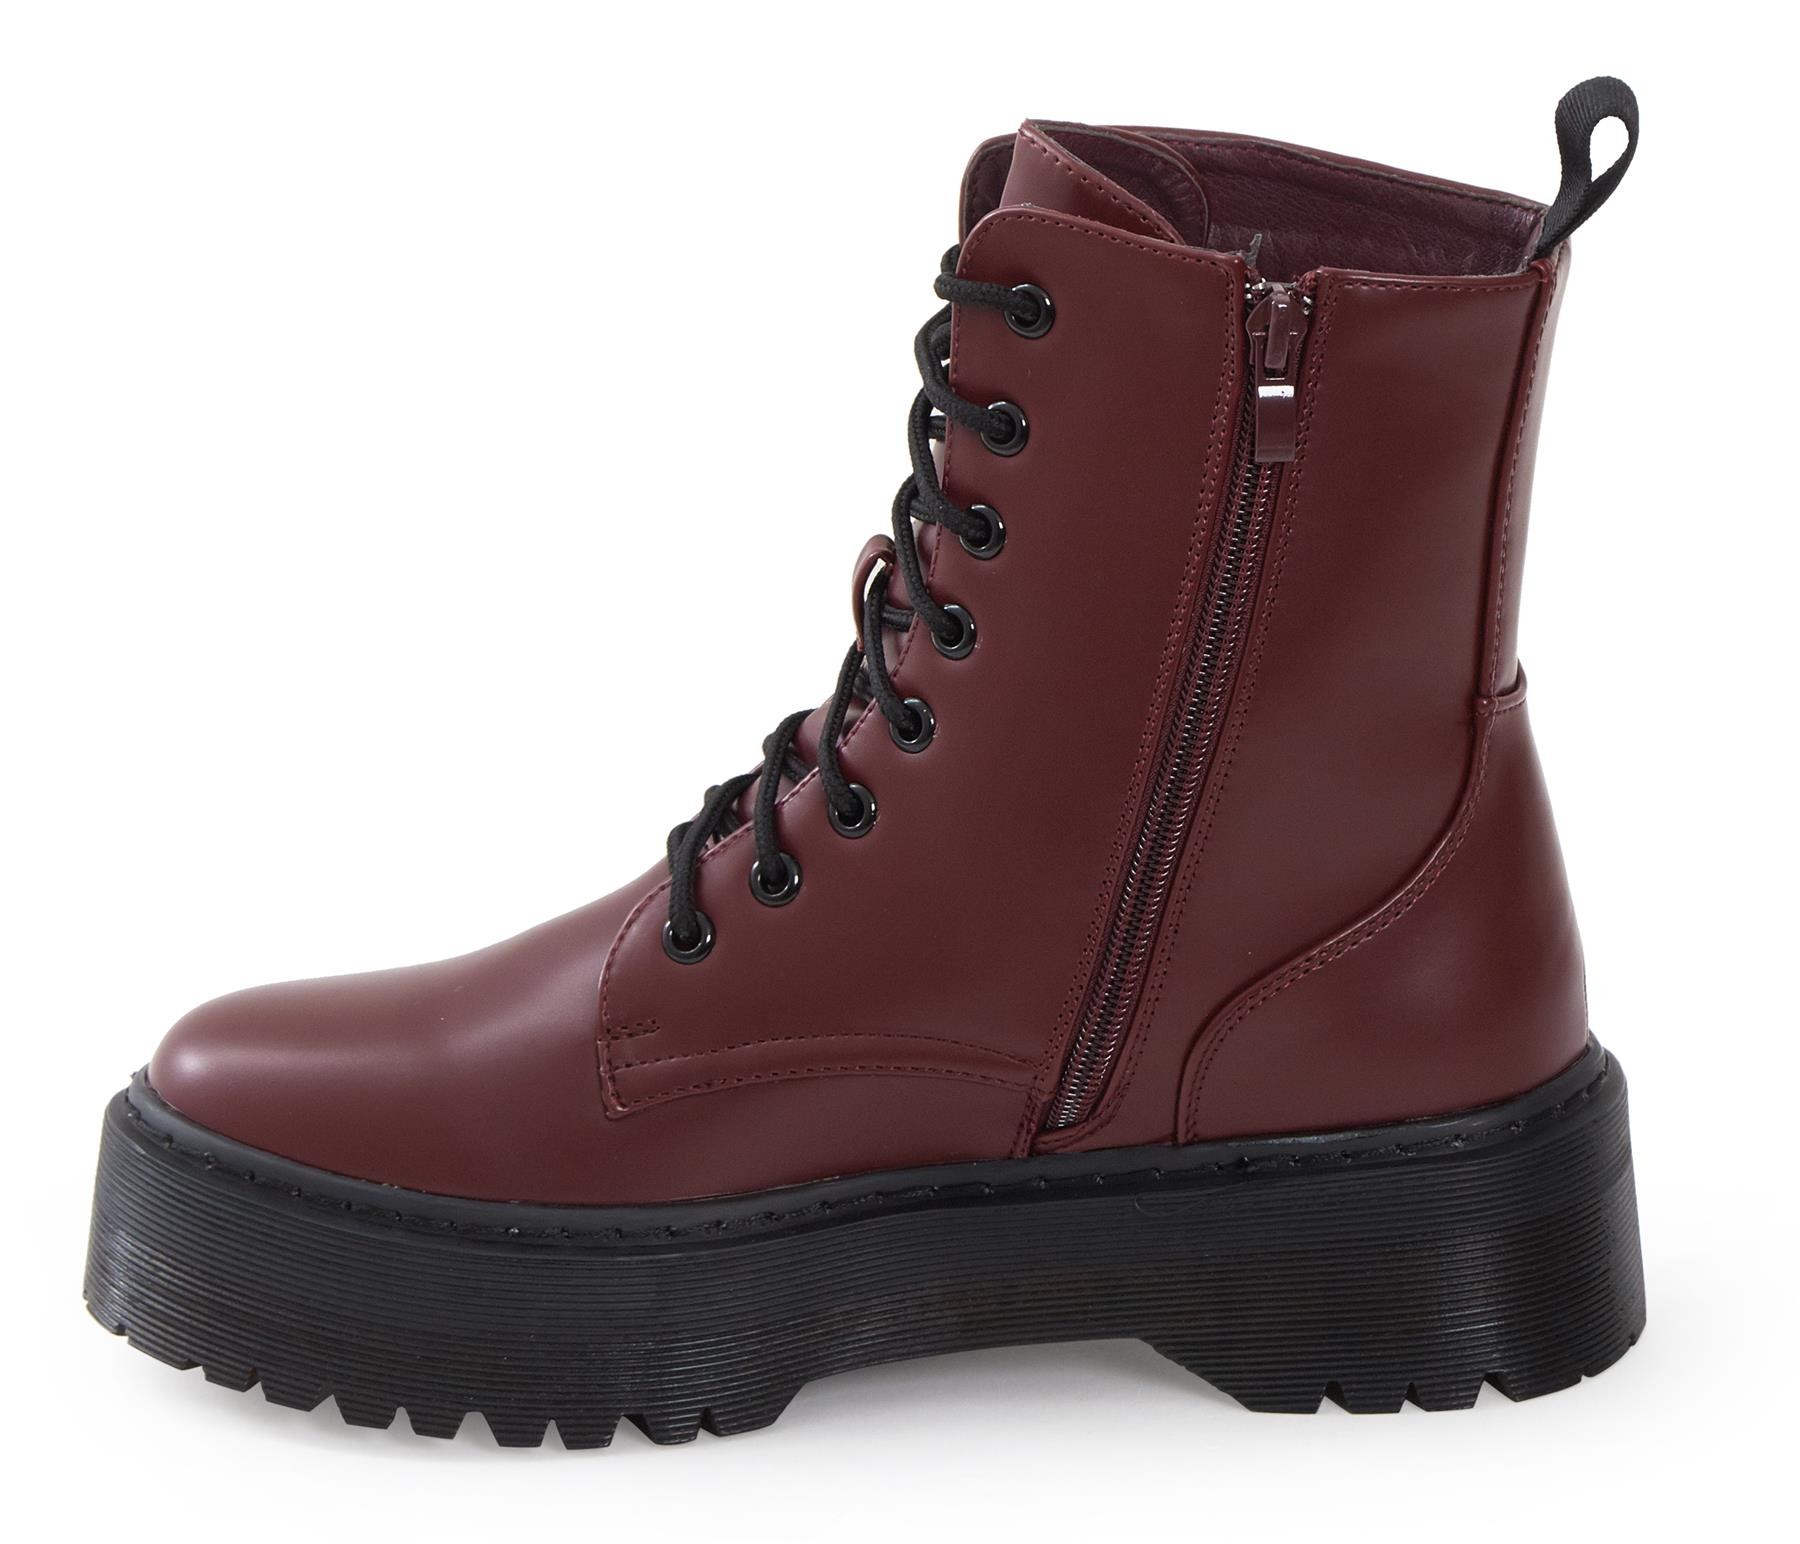 Womens-HiTop-Platform-Military-Punk-Biker-Ankle-PU-Leather-Lace-Up-Vintage-Boots thumbnail 21